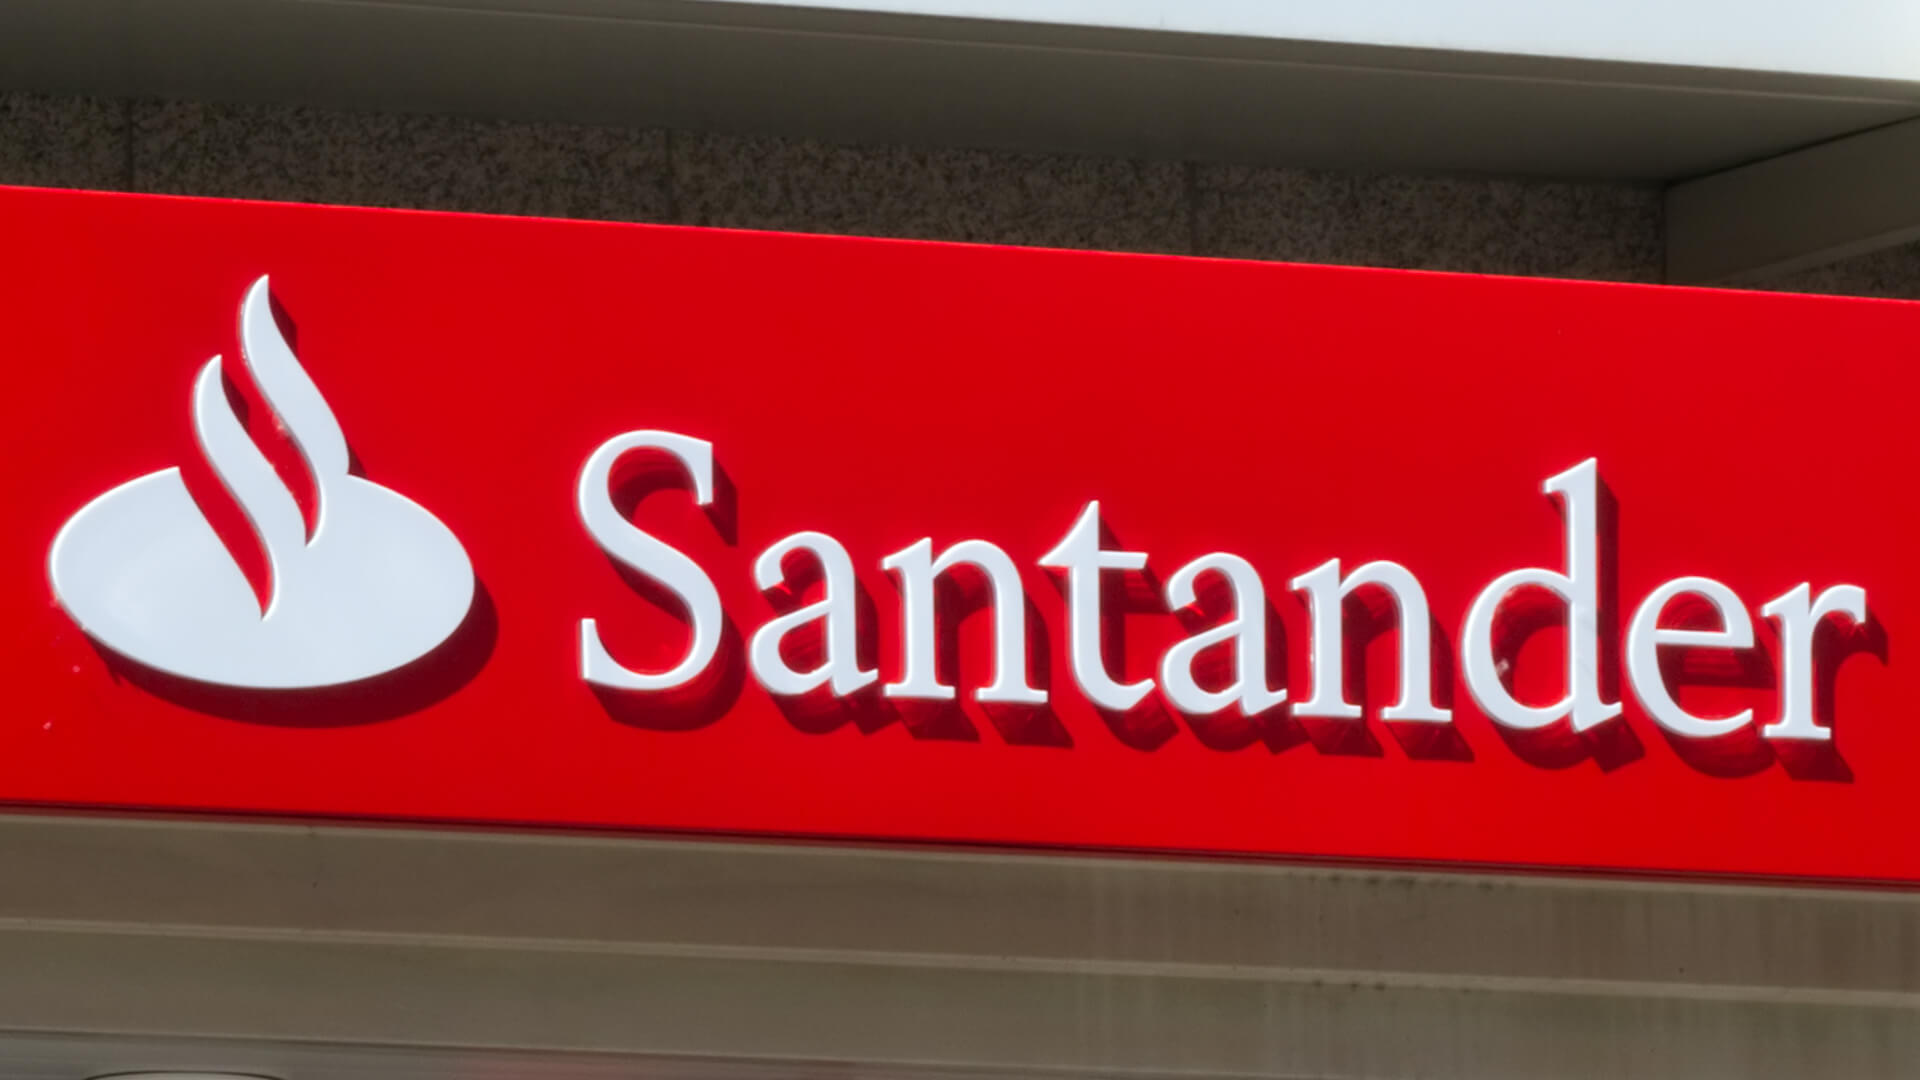 Here S Your Santander Routing Number